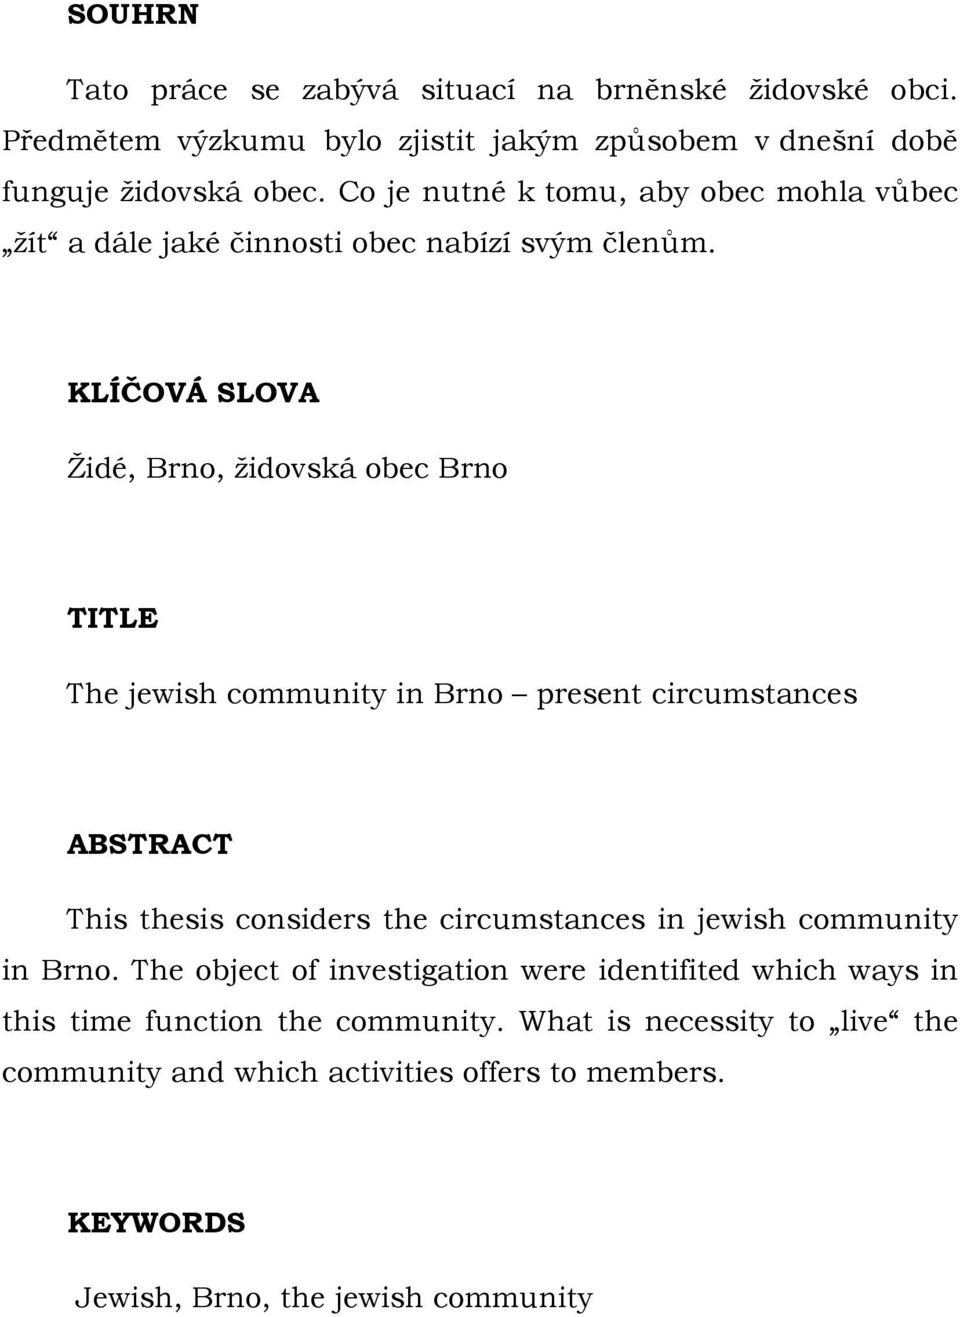 KLÍČOVÁ SLOVA Židé, Brno, židovská obec Brno TITLE The jewish community in Brno present circumstances ABSTRACT This thesis considers the circumstances in